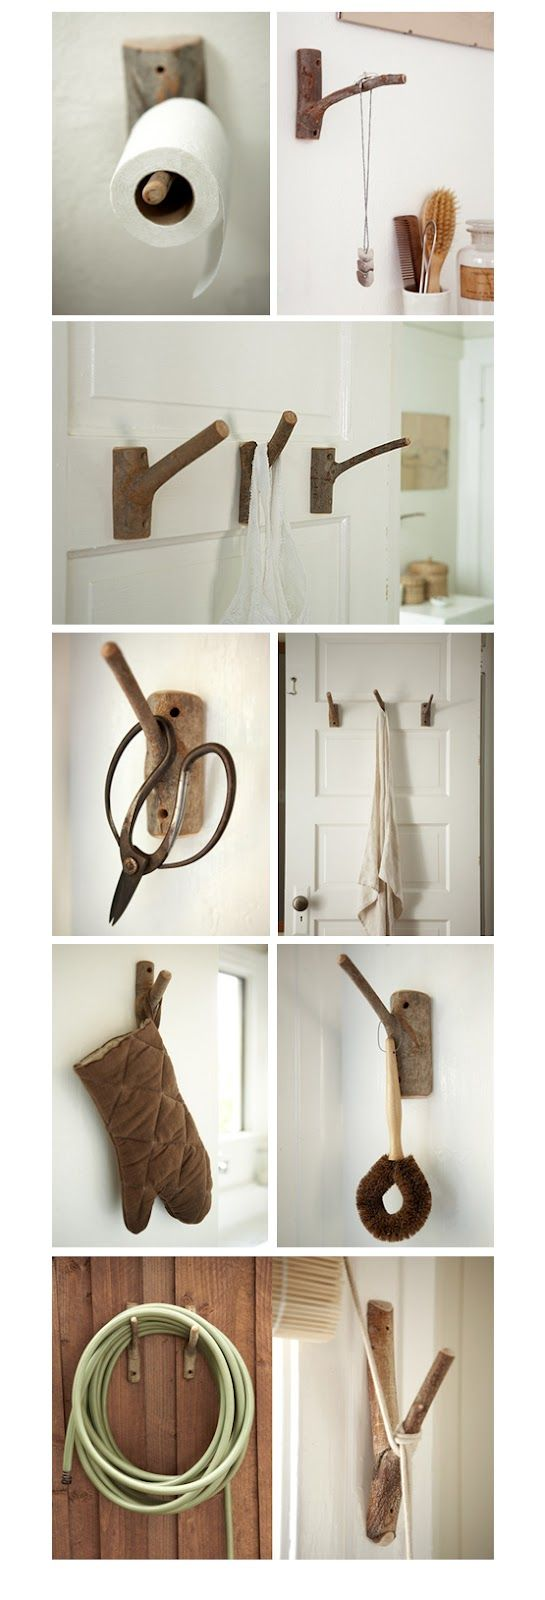 Art & Decor From Branches, Twigs & Sticks tree branch hooks